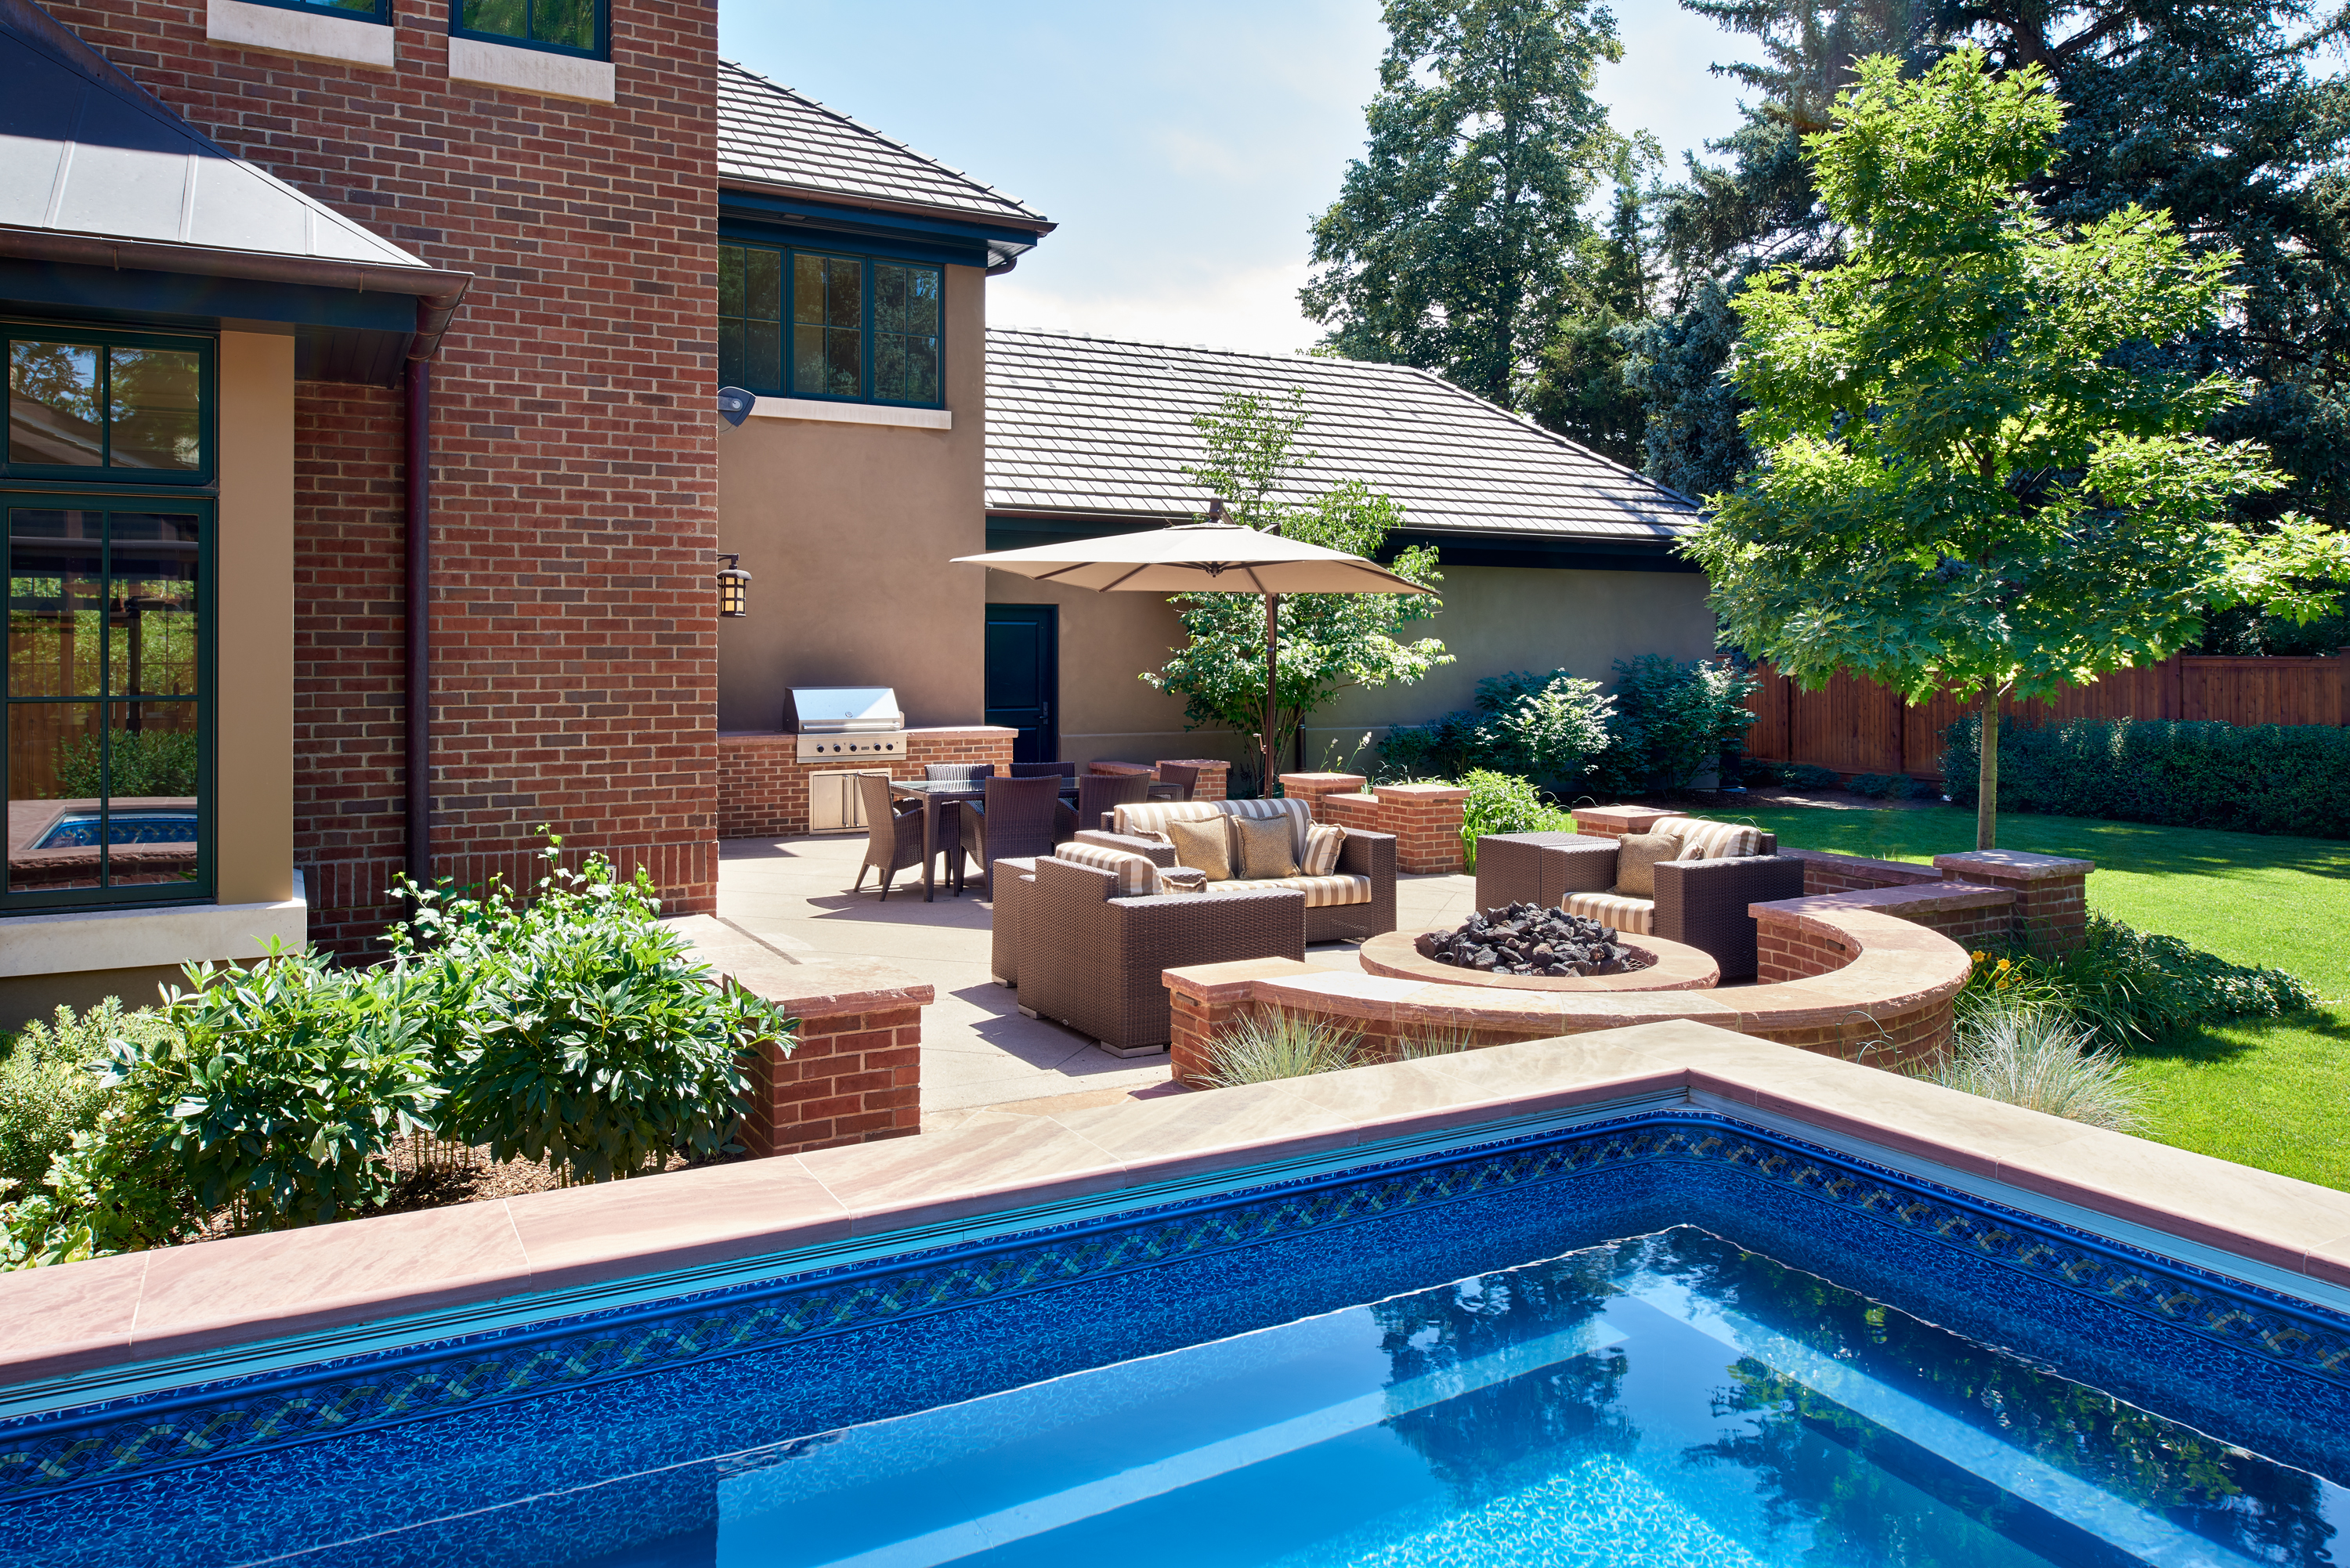 buesy-pool-patio